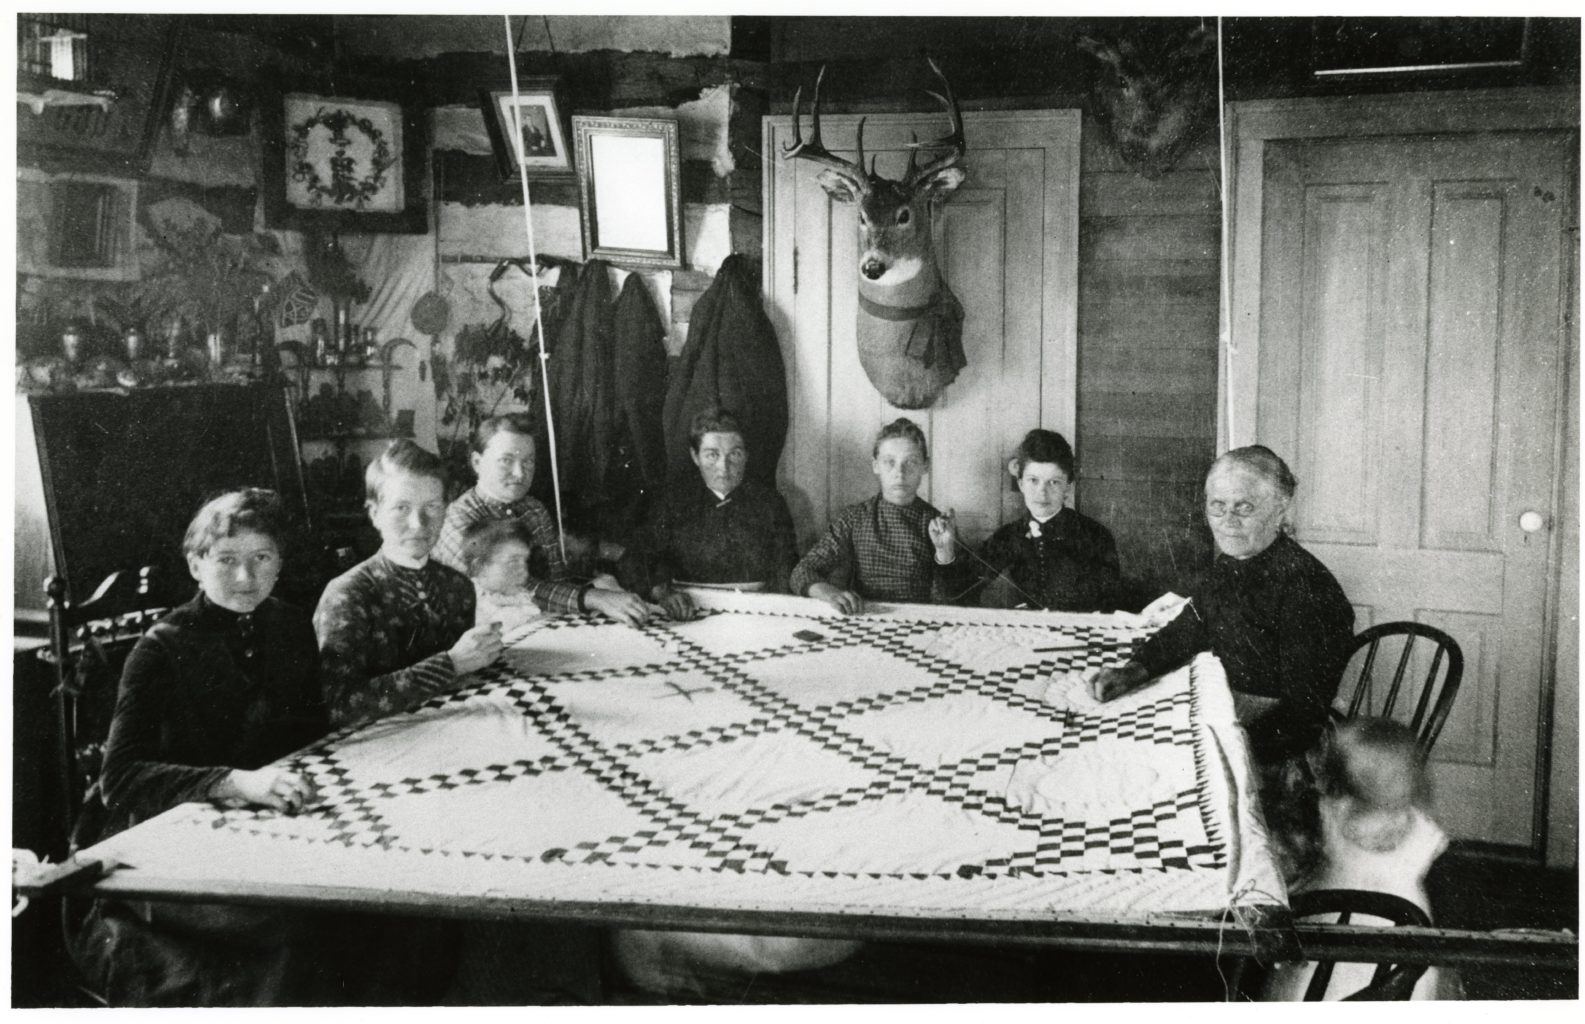 Seven women and two children quilting inside.